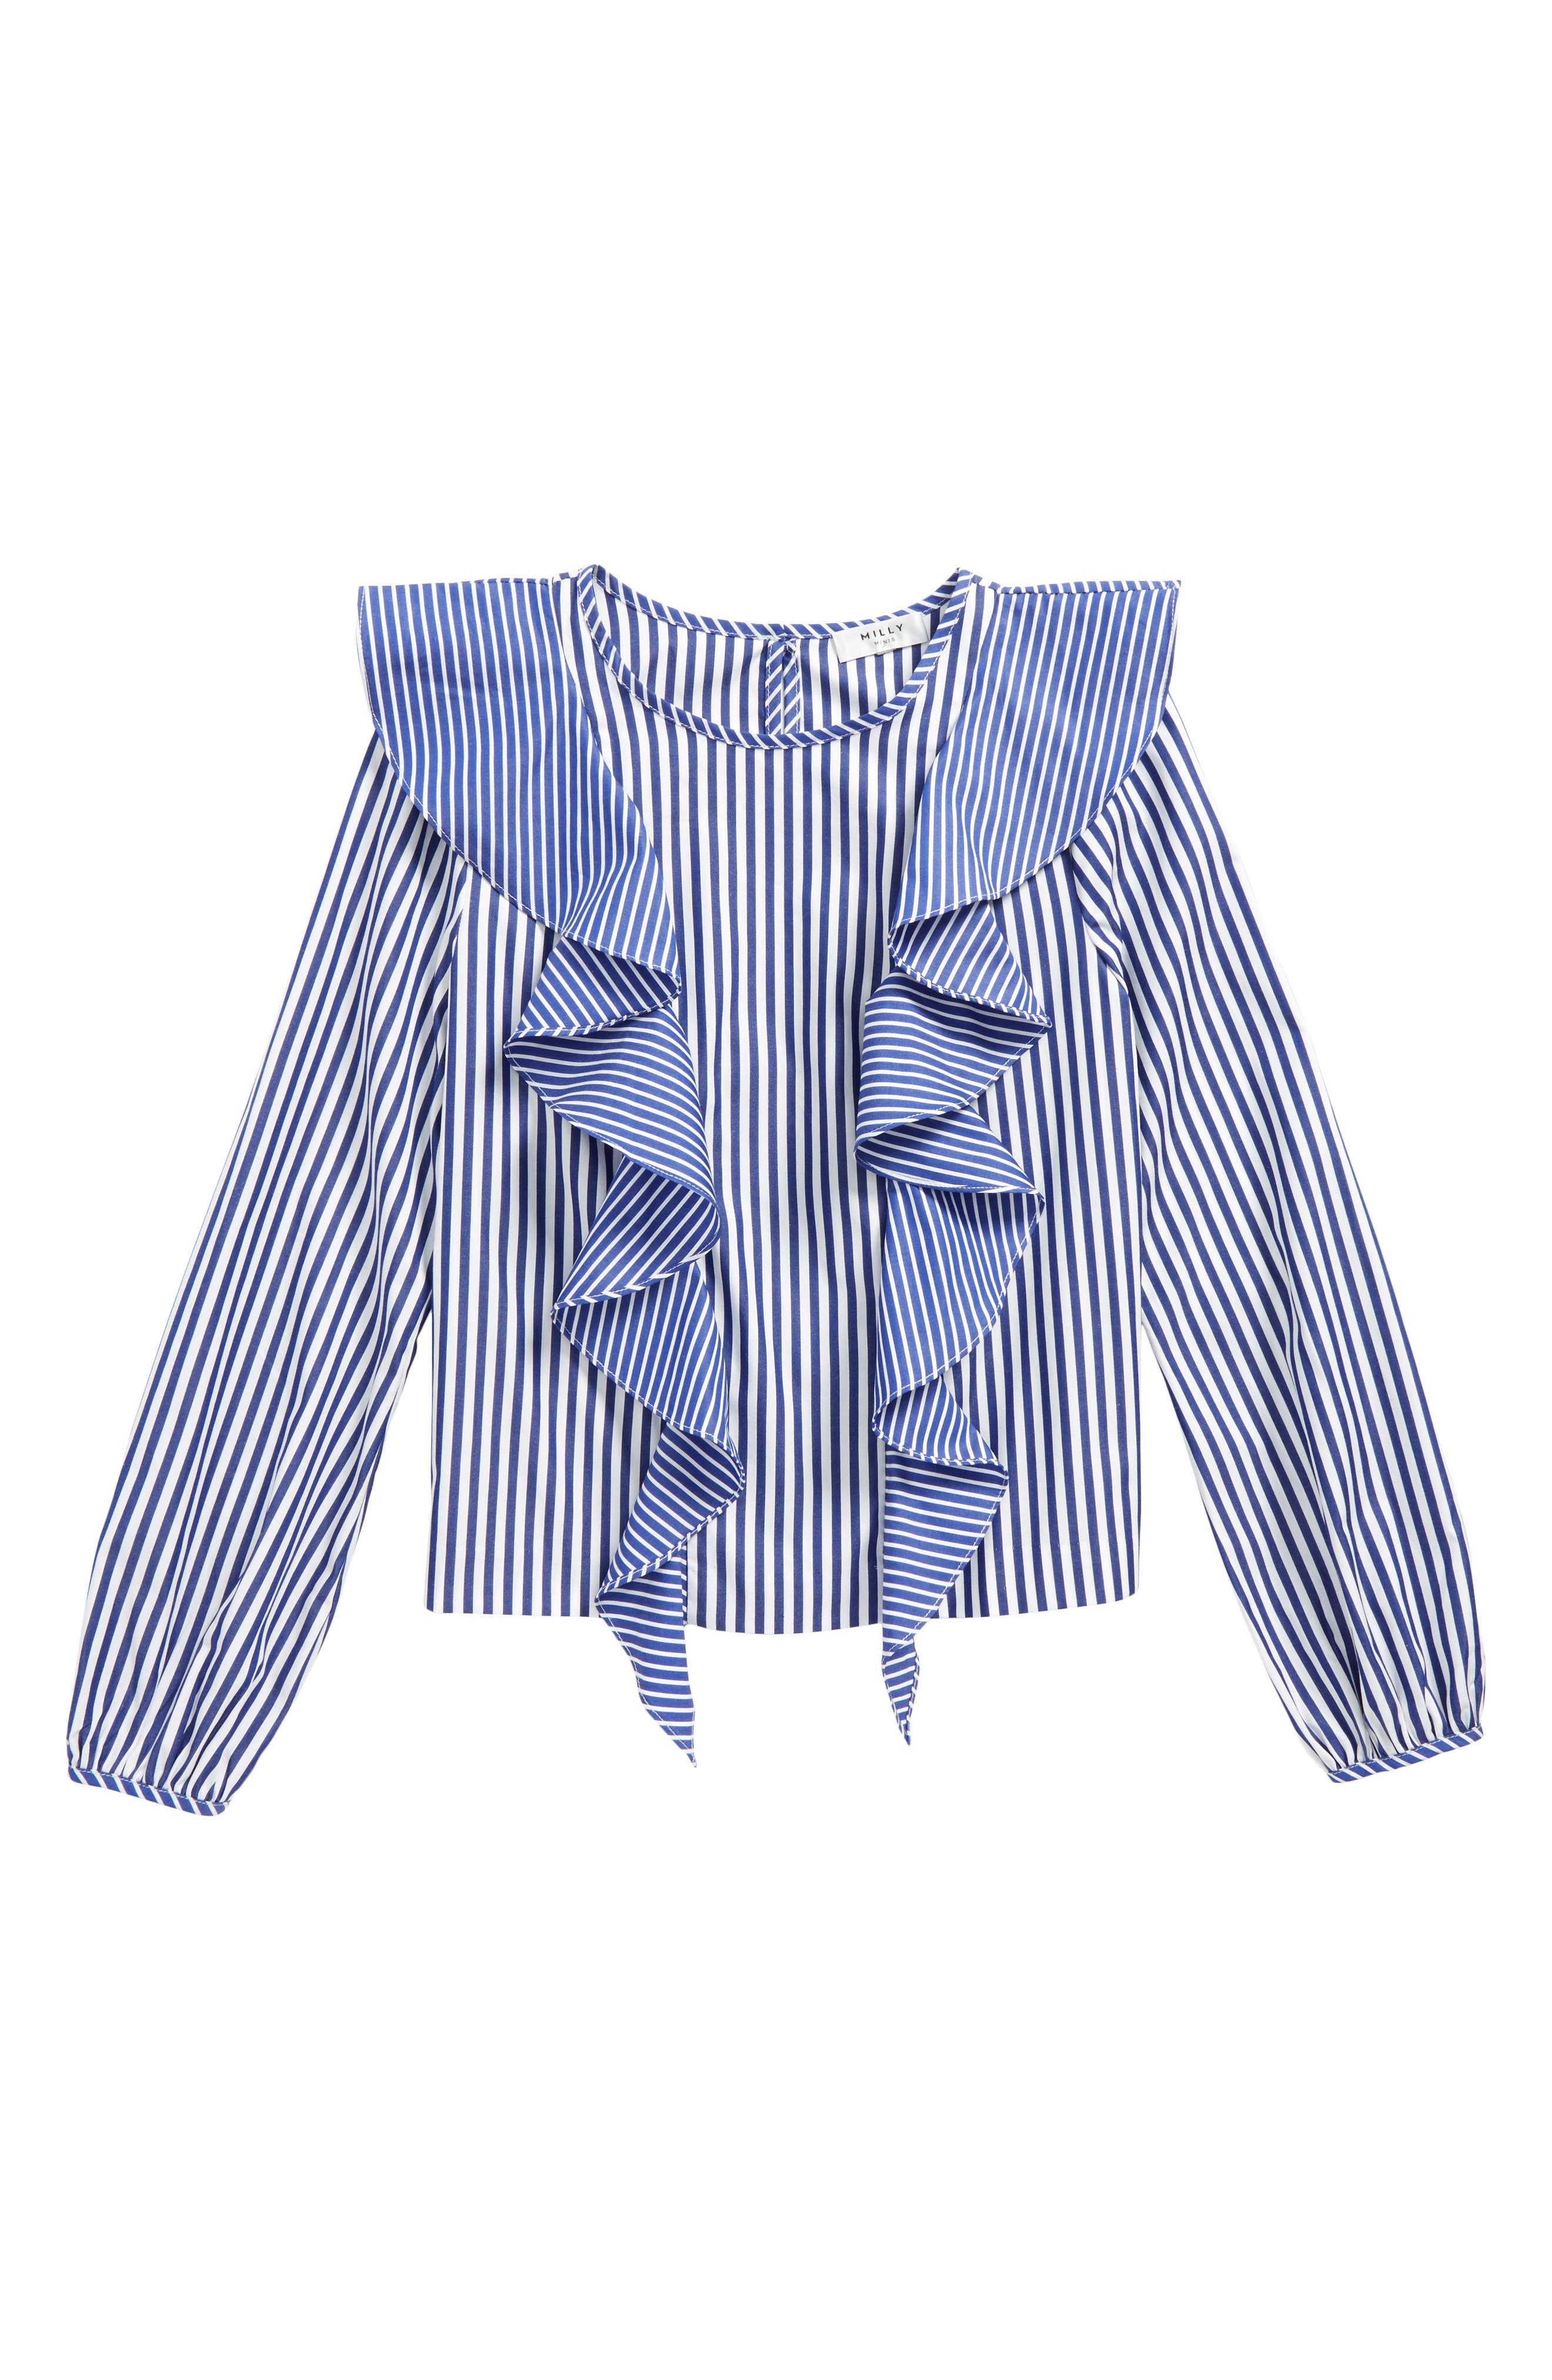 Alternate Image 1 Selected - Milly Minis Kennedy Ruffle Top (Big Girls)